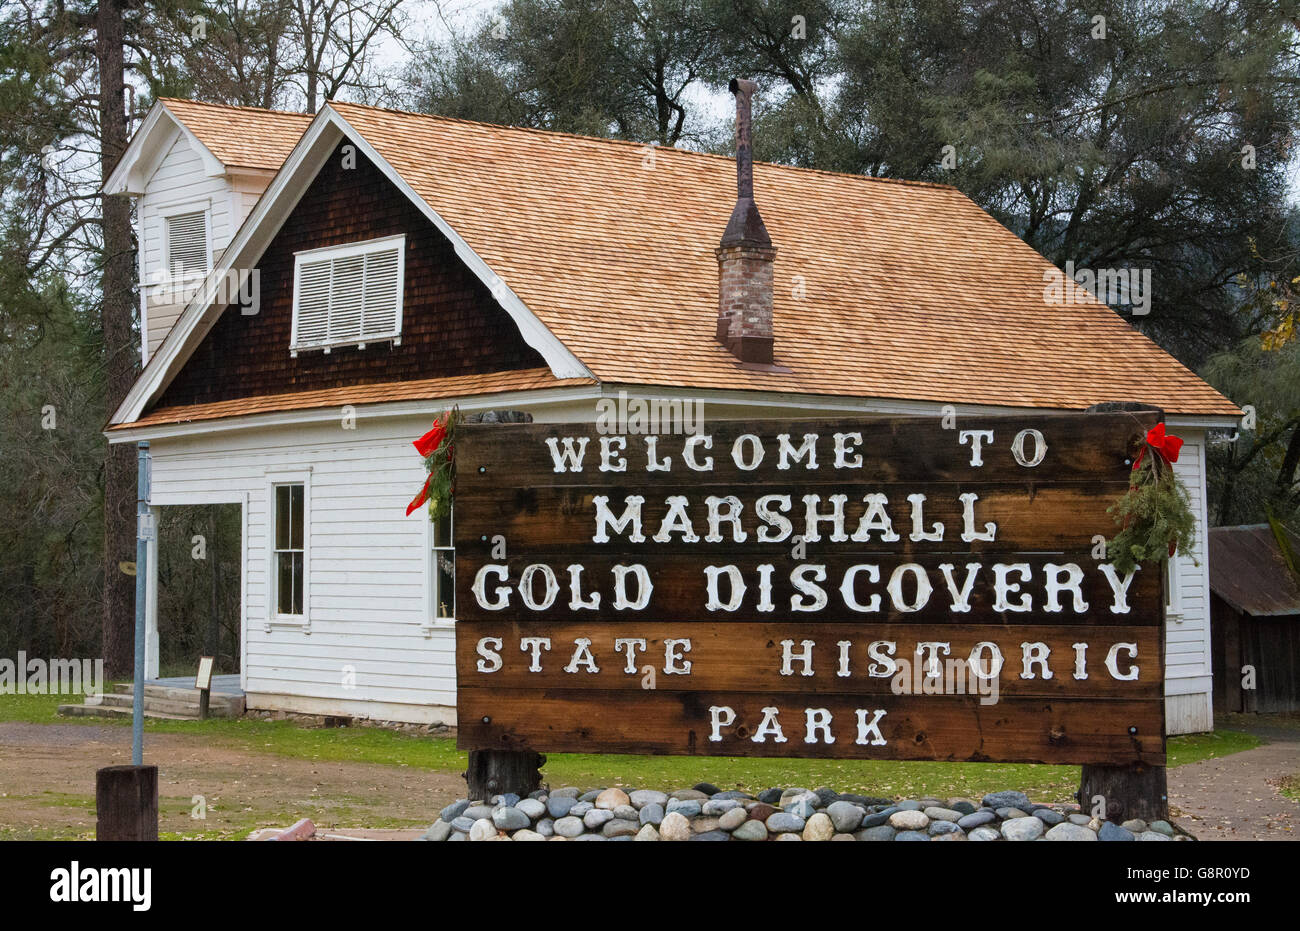 Coloma California famous Marshall Gold Discovery State Park where gold was first discovered in 1885 - Stock Image